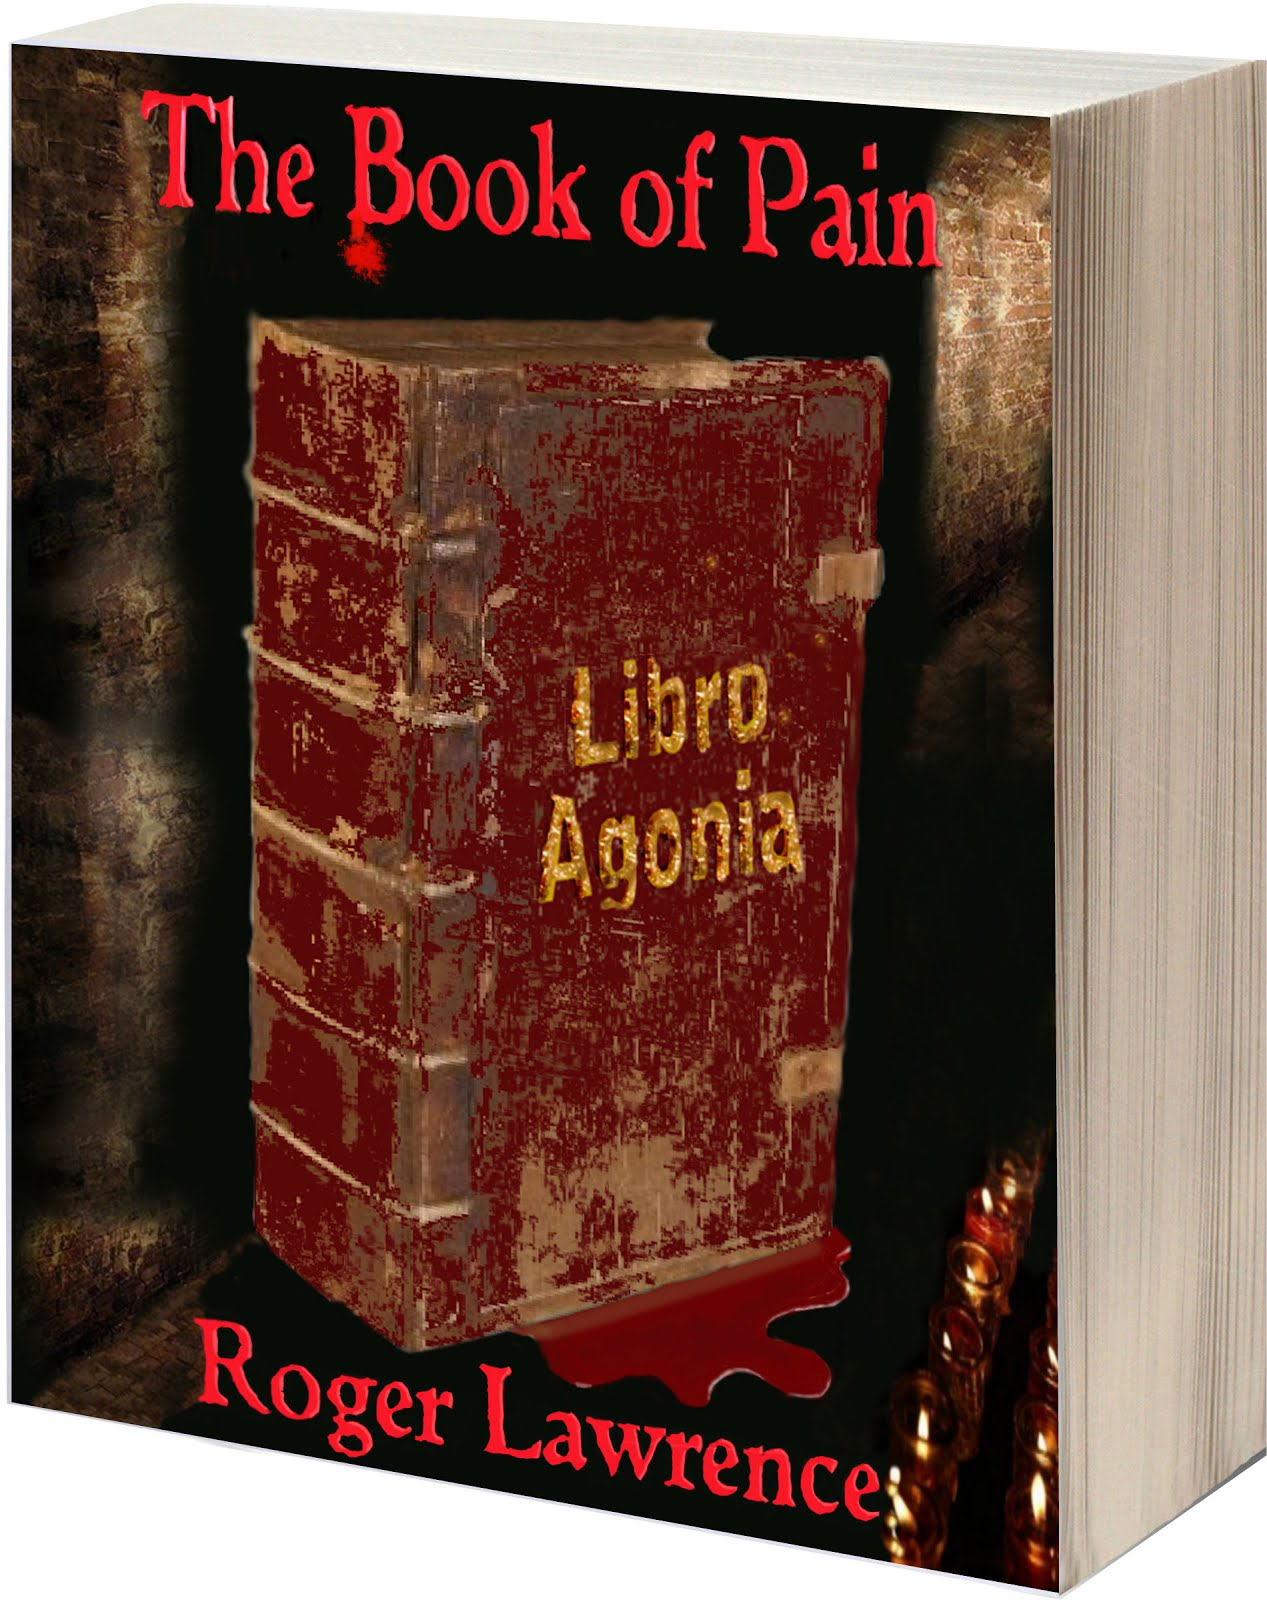 The Book of Pain